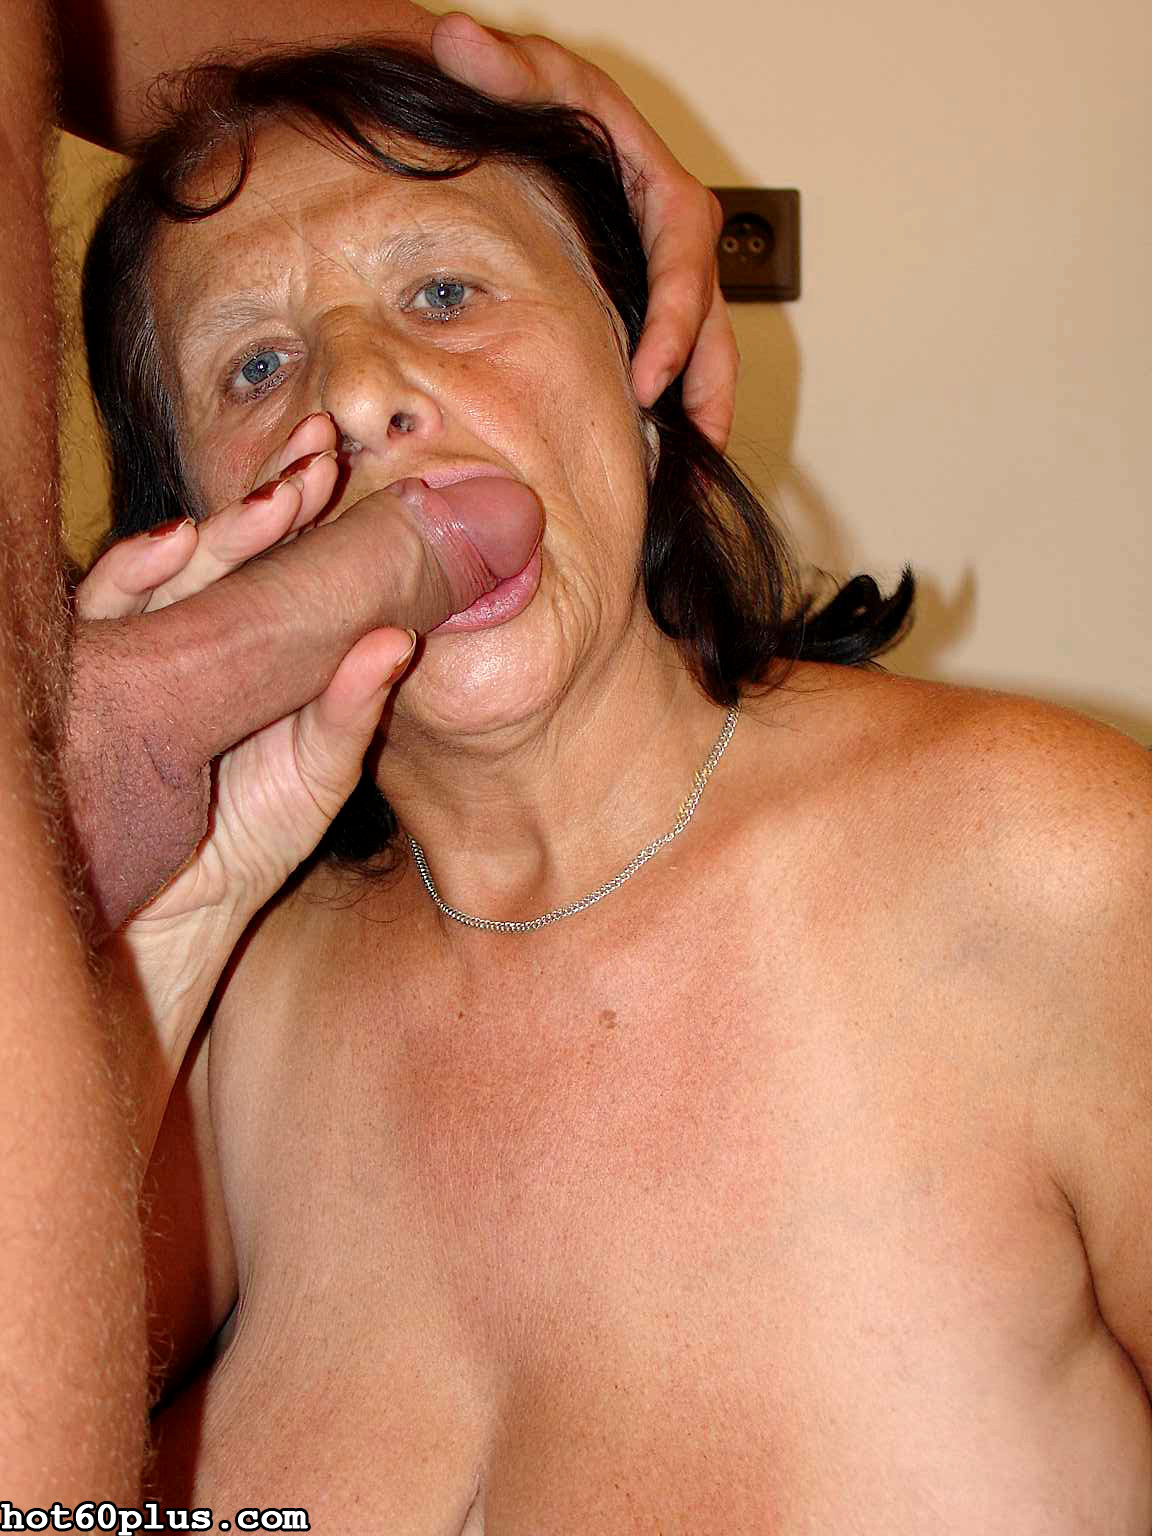 Mature sex free gallery excellent idea